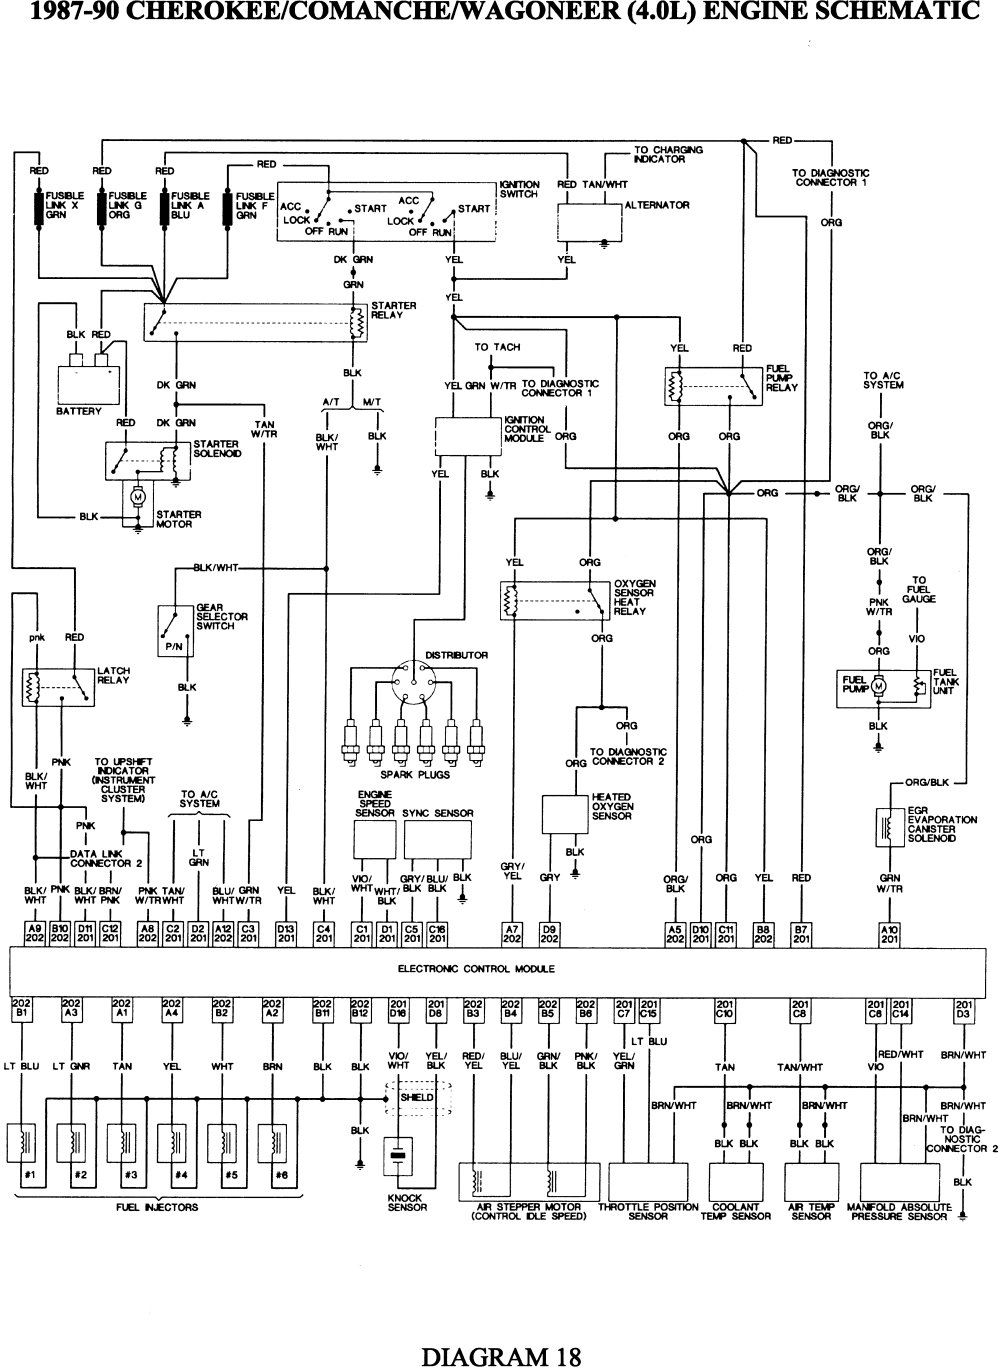 jeep transmission wiring diagram in 97 wrangler wiring diagram jeep xj auto trans wiring [ 1000 x 1369 Pixel ]